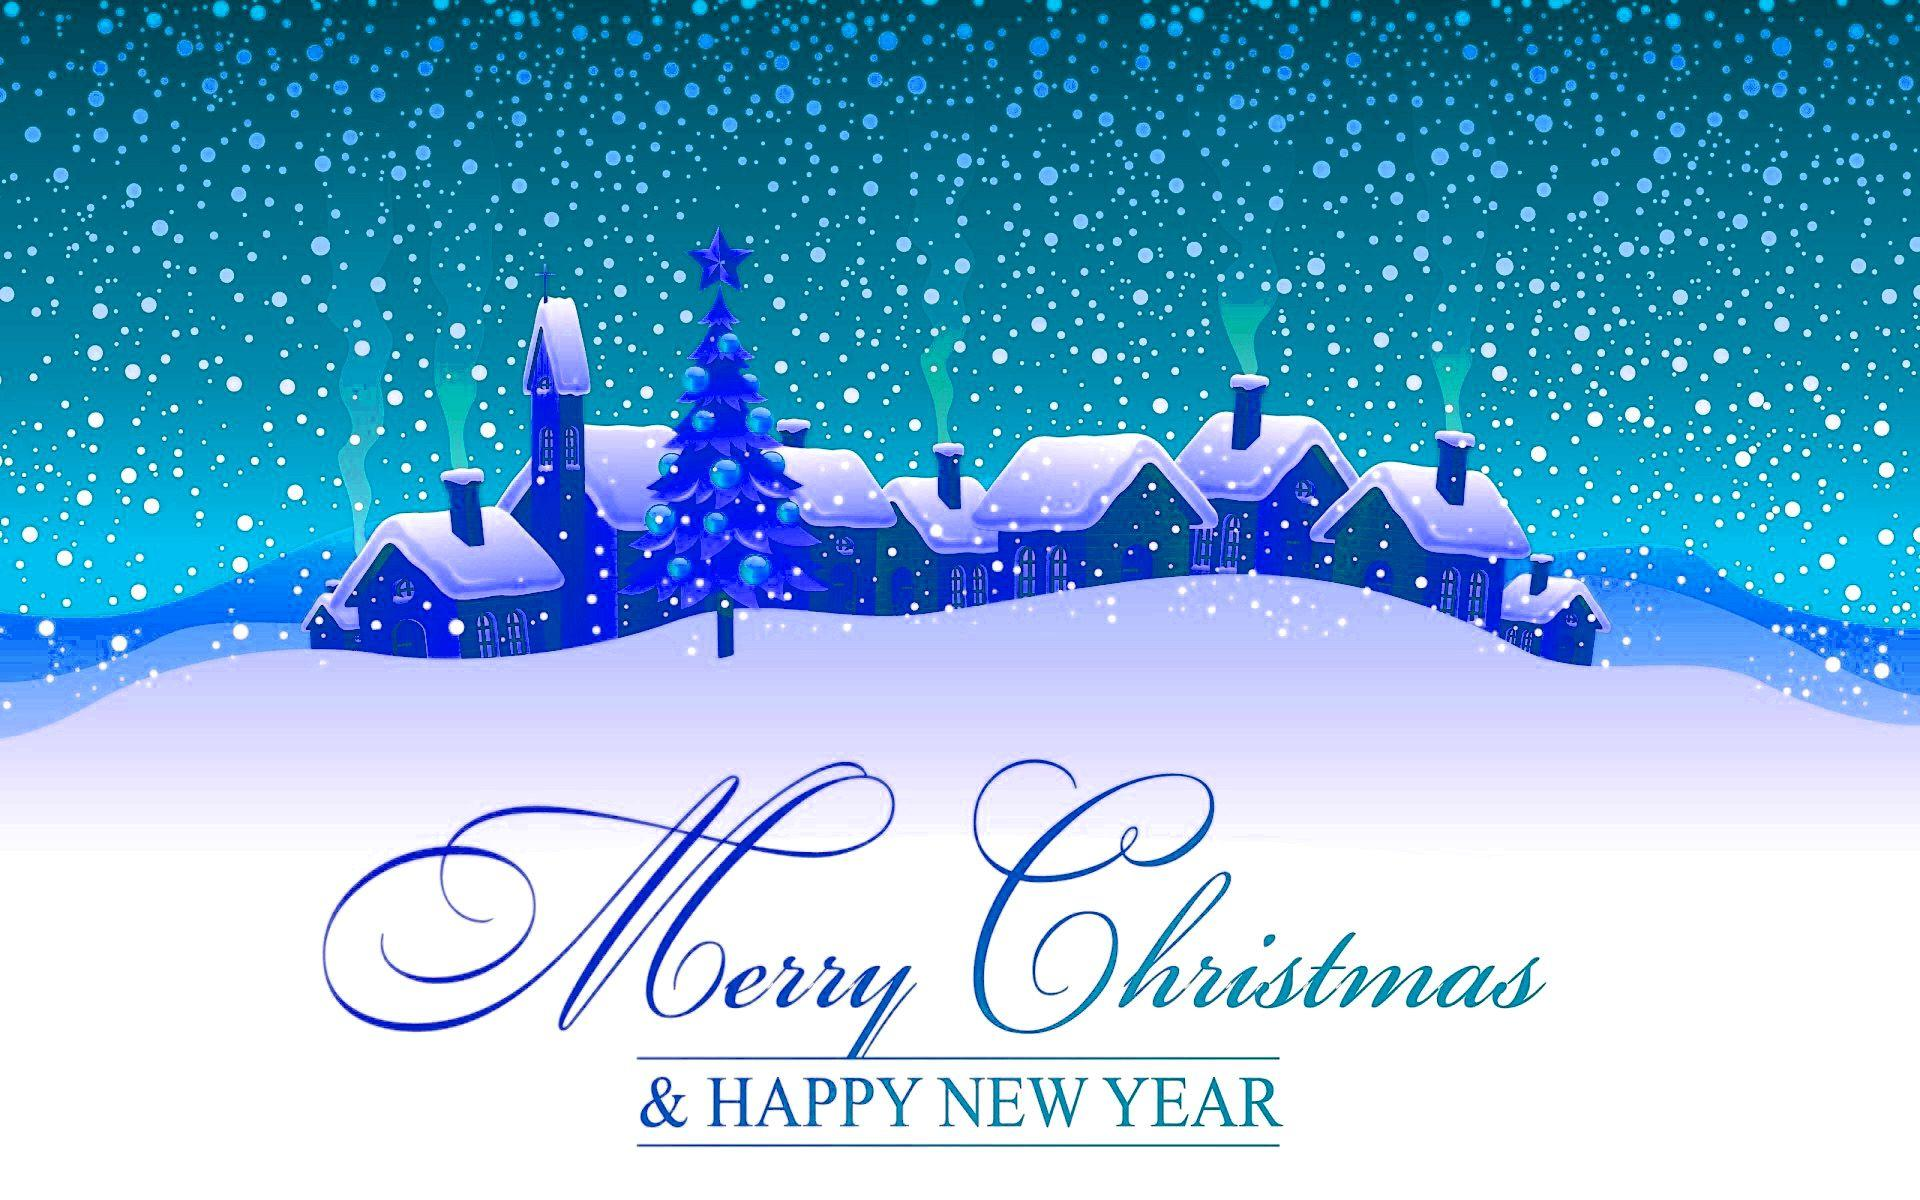 Best Merry Christmas 2018 And Happy New Year 2019 Image